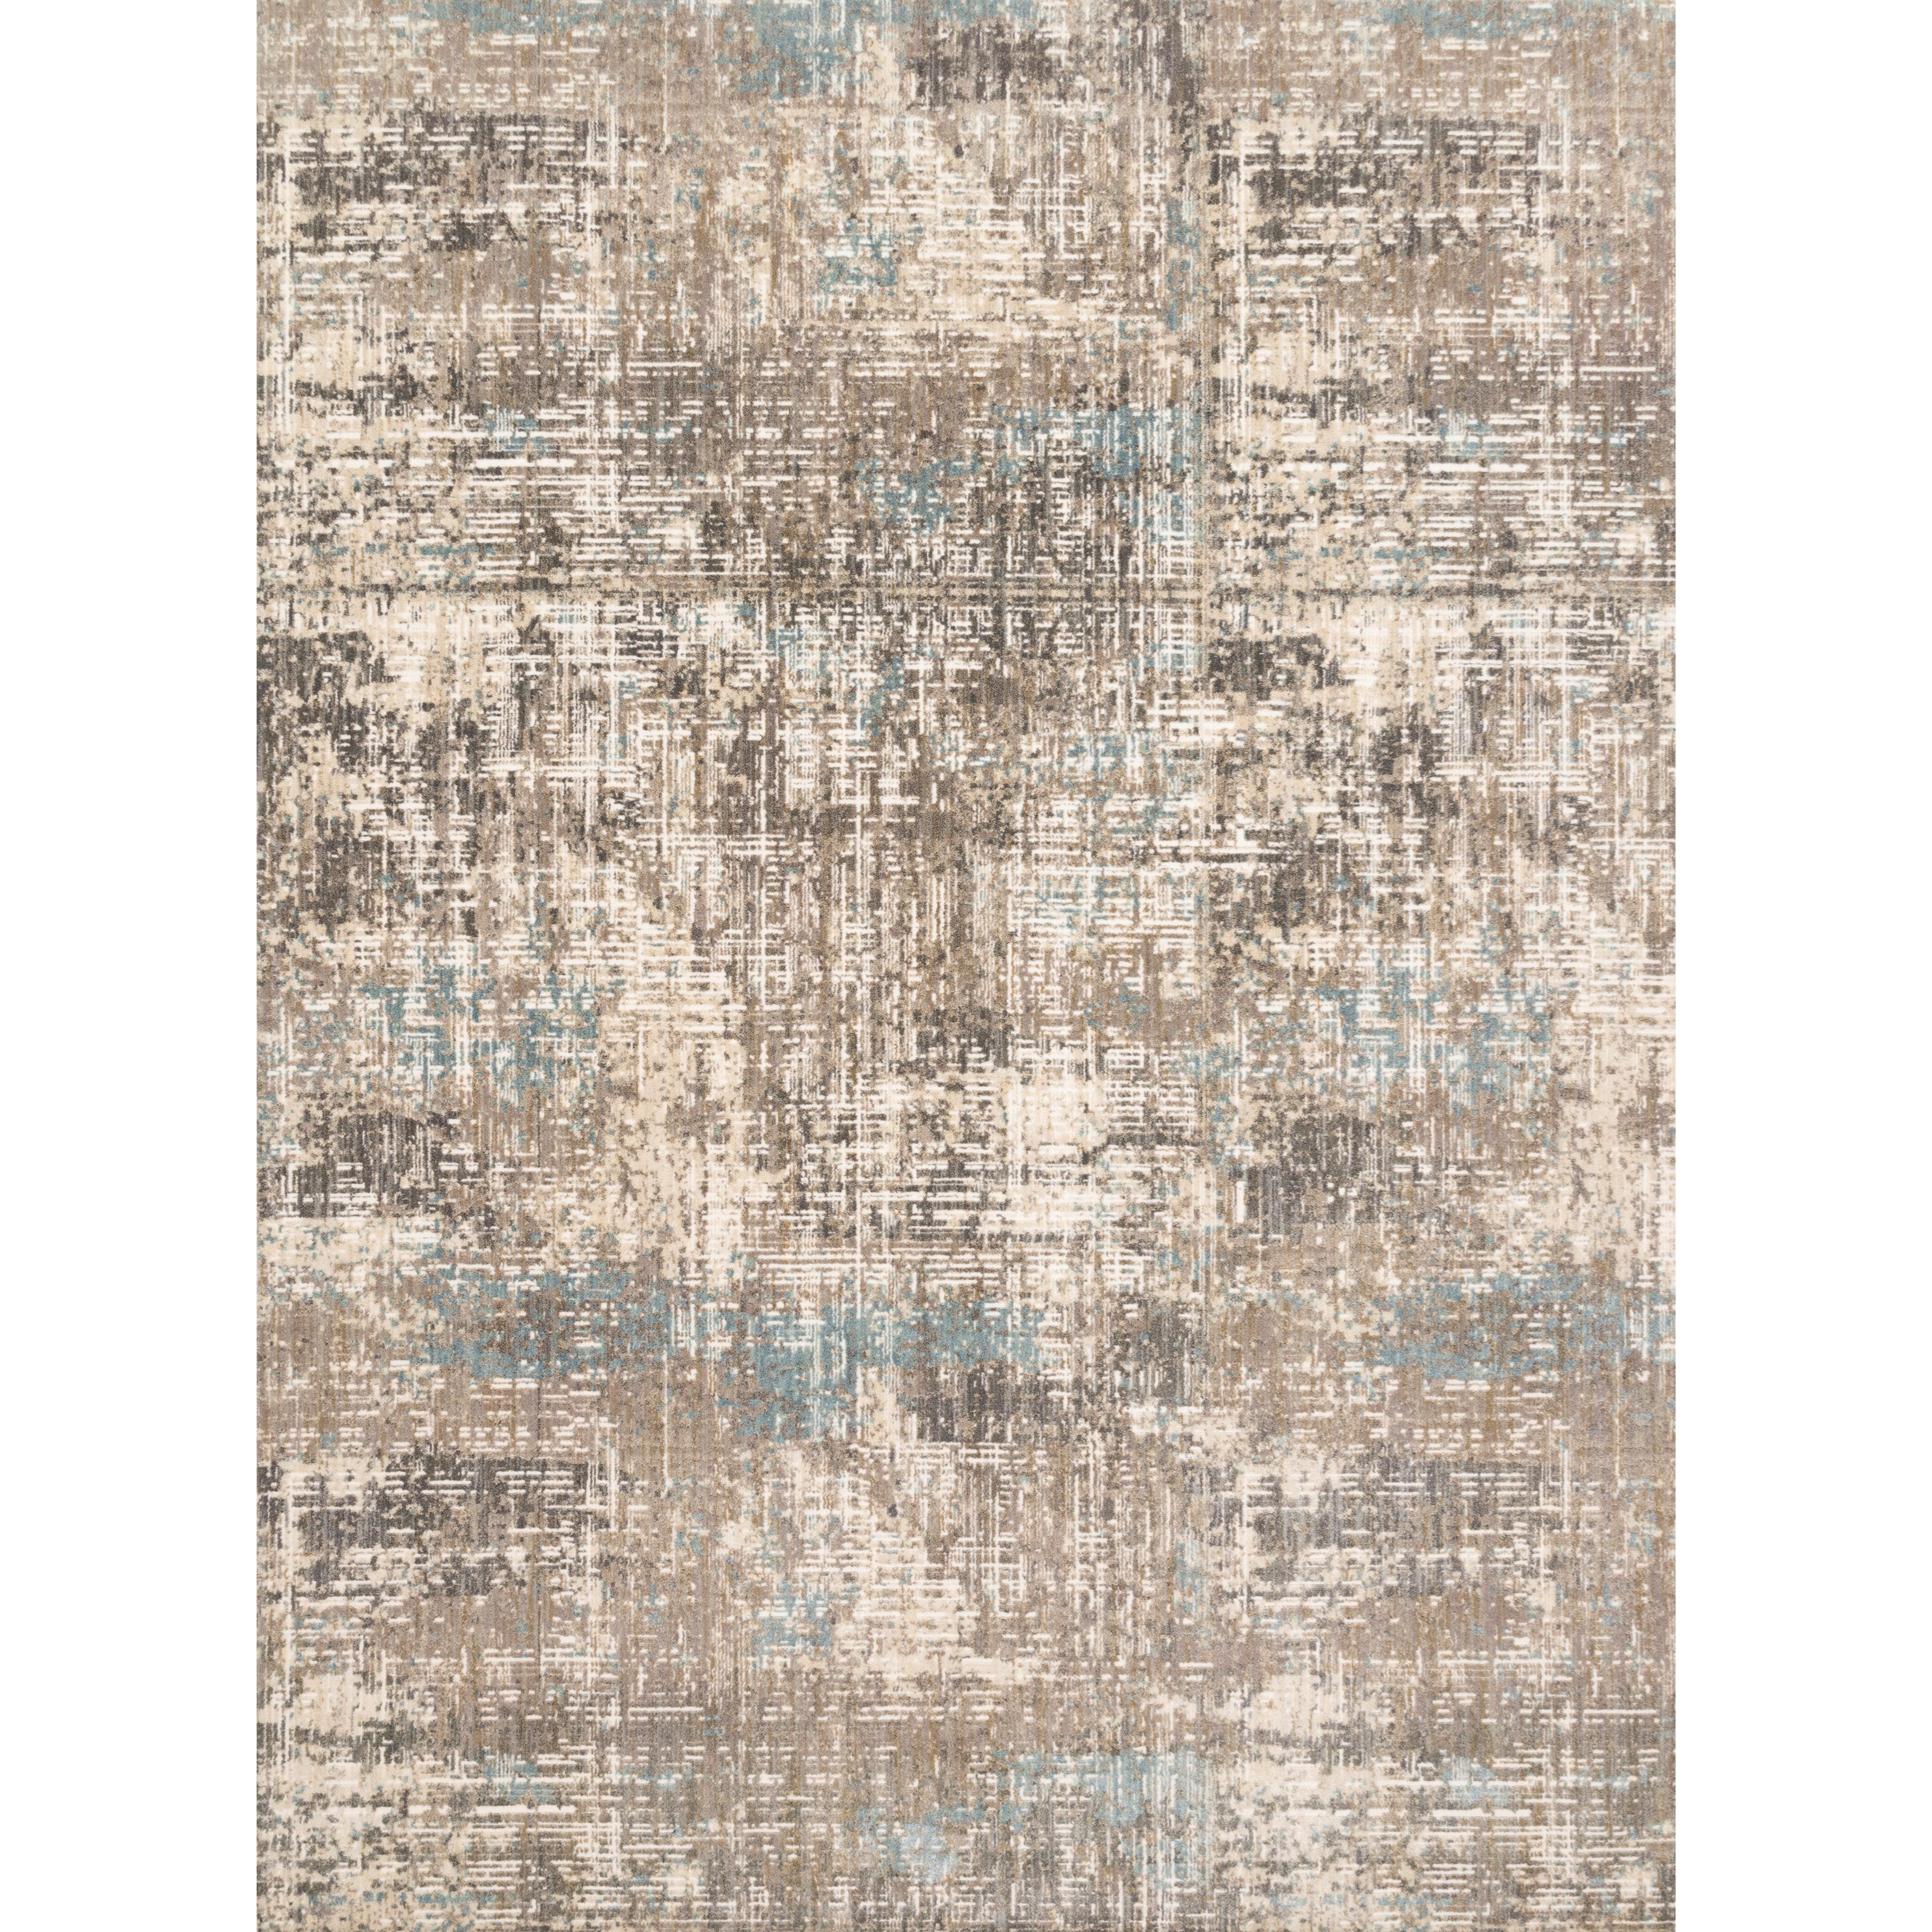 """Reid 11'6"""" x 15' Pewter Rug by Loloi Rugs at Virginia Furniture Market"""